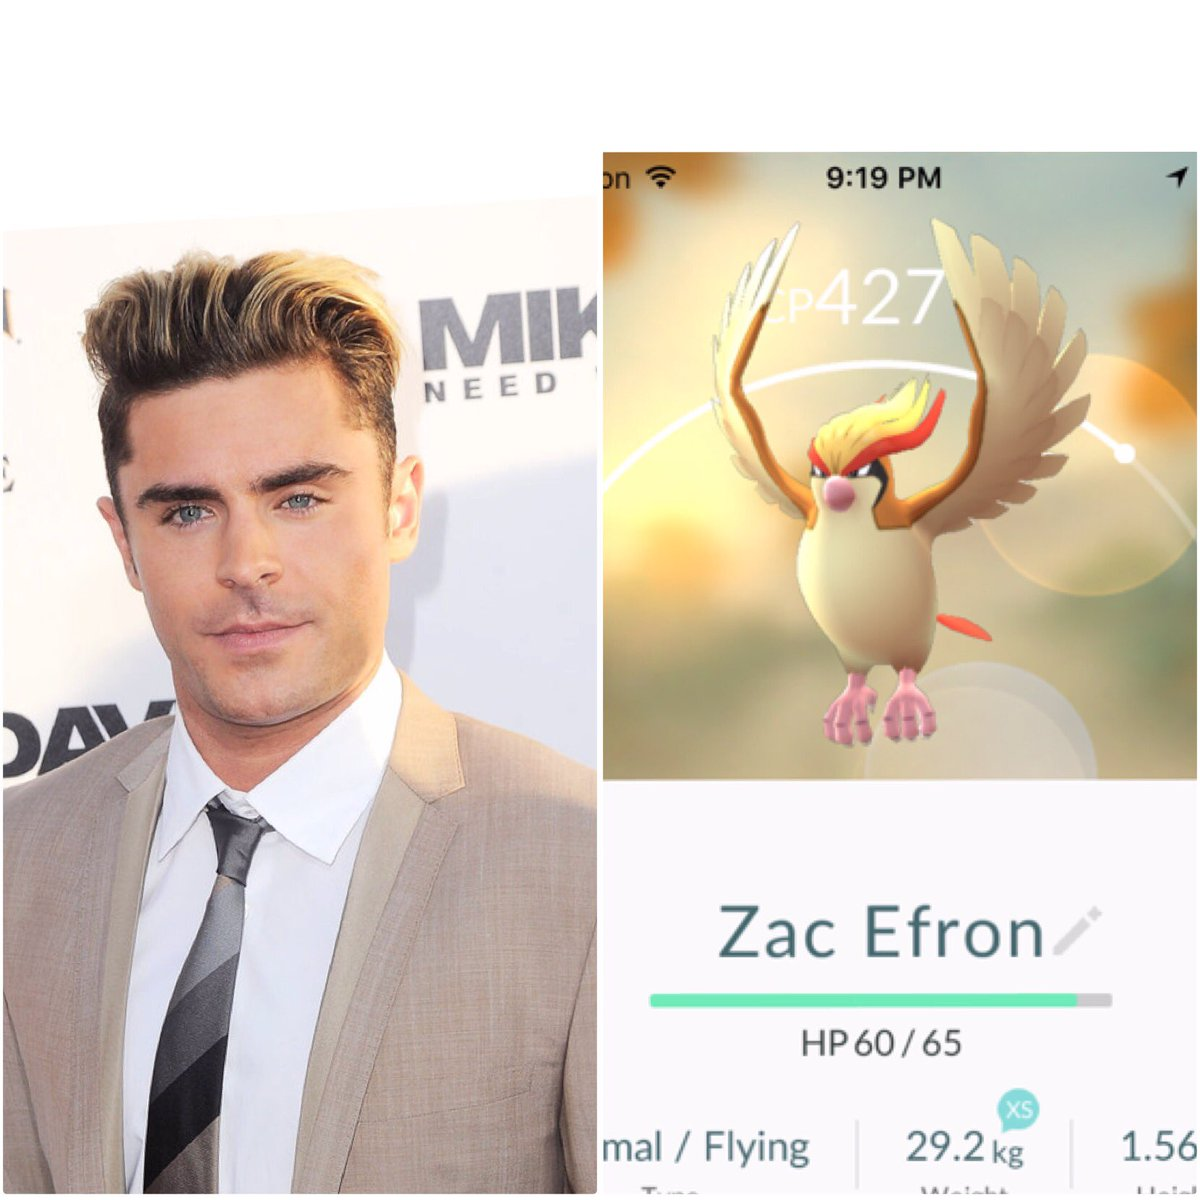 Mason Handa On Twitter Zac Efron Thinks He Can Rip Off Pidgeots